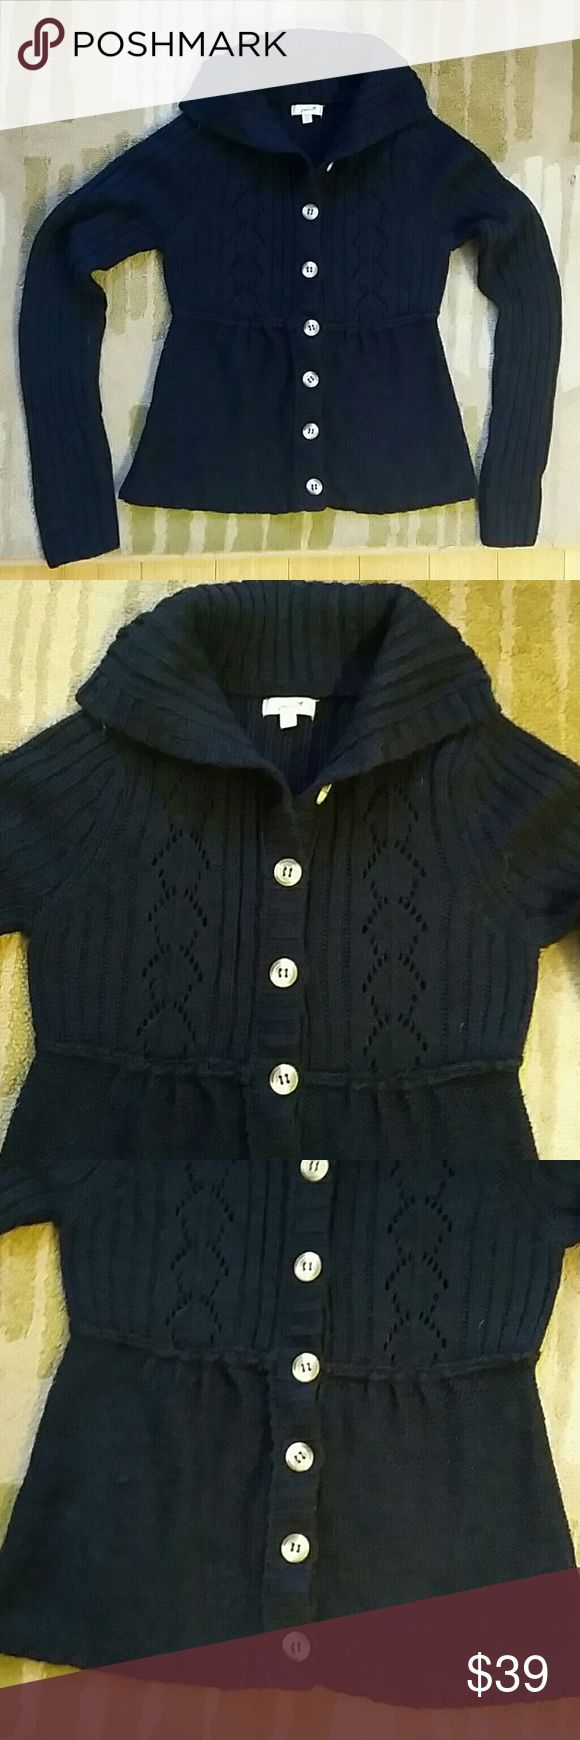 WEEKEND SALE! Navy Pointelle Cardigan Sweater Navy Blue Crochet Style Pointelle Sweater Cardigan Size medium Cream Colored Buttons down front closure High neck collar, worn folded over Babydoll style, fitted cut  Classic Preppy Collared Neckline, button closure. Perfect throwback cardigan sweater for fall/ autumn/ winter staples. Wear to school, wear to work, wear to the ski slopes :-)  Bundle discounts, offers welcome! Grane Sweaters Cardigans